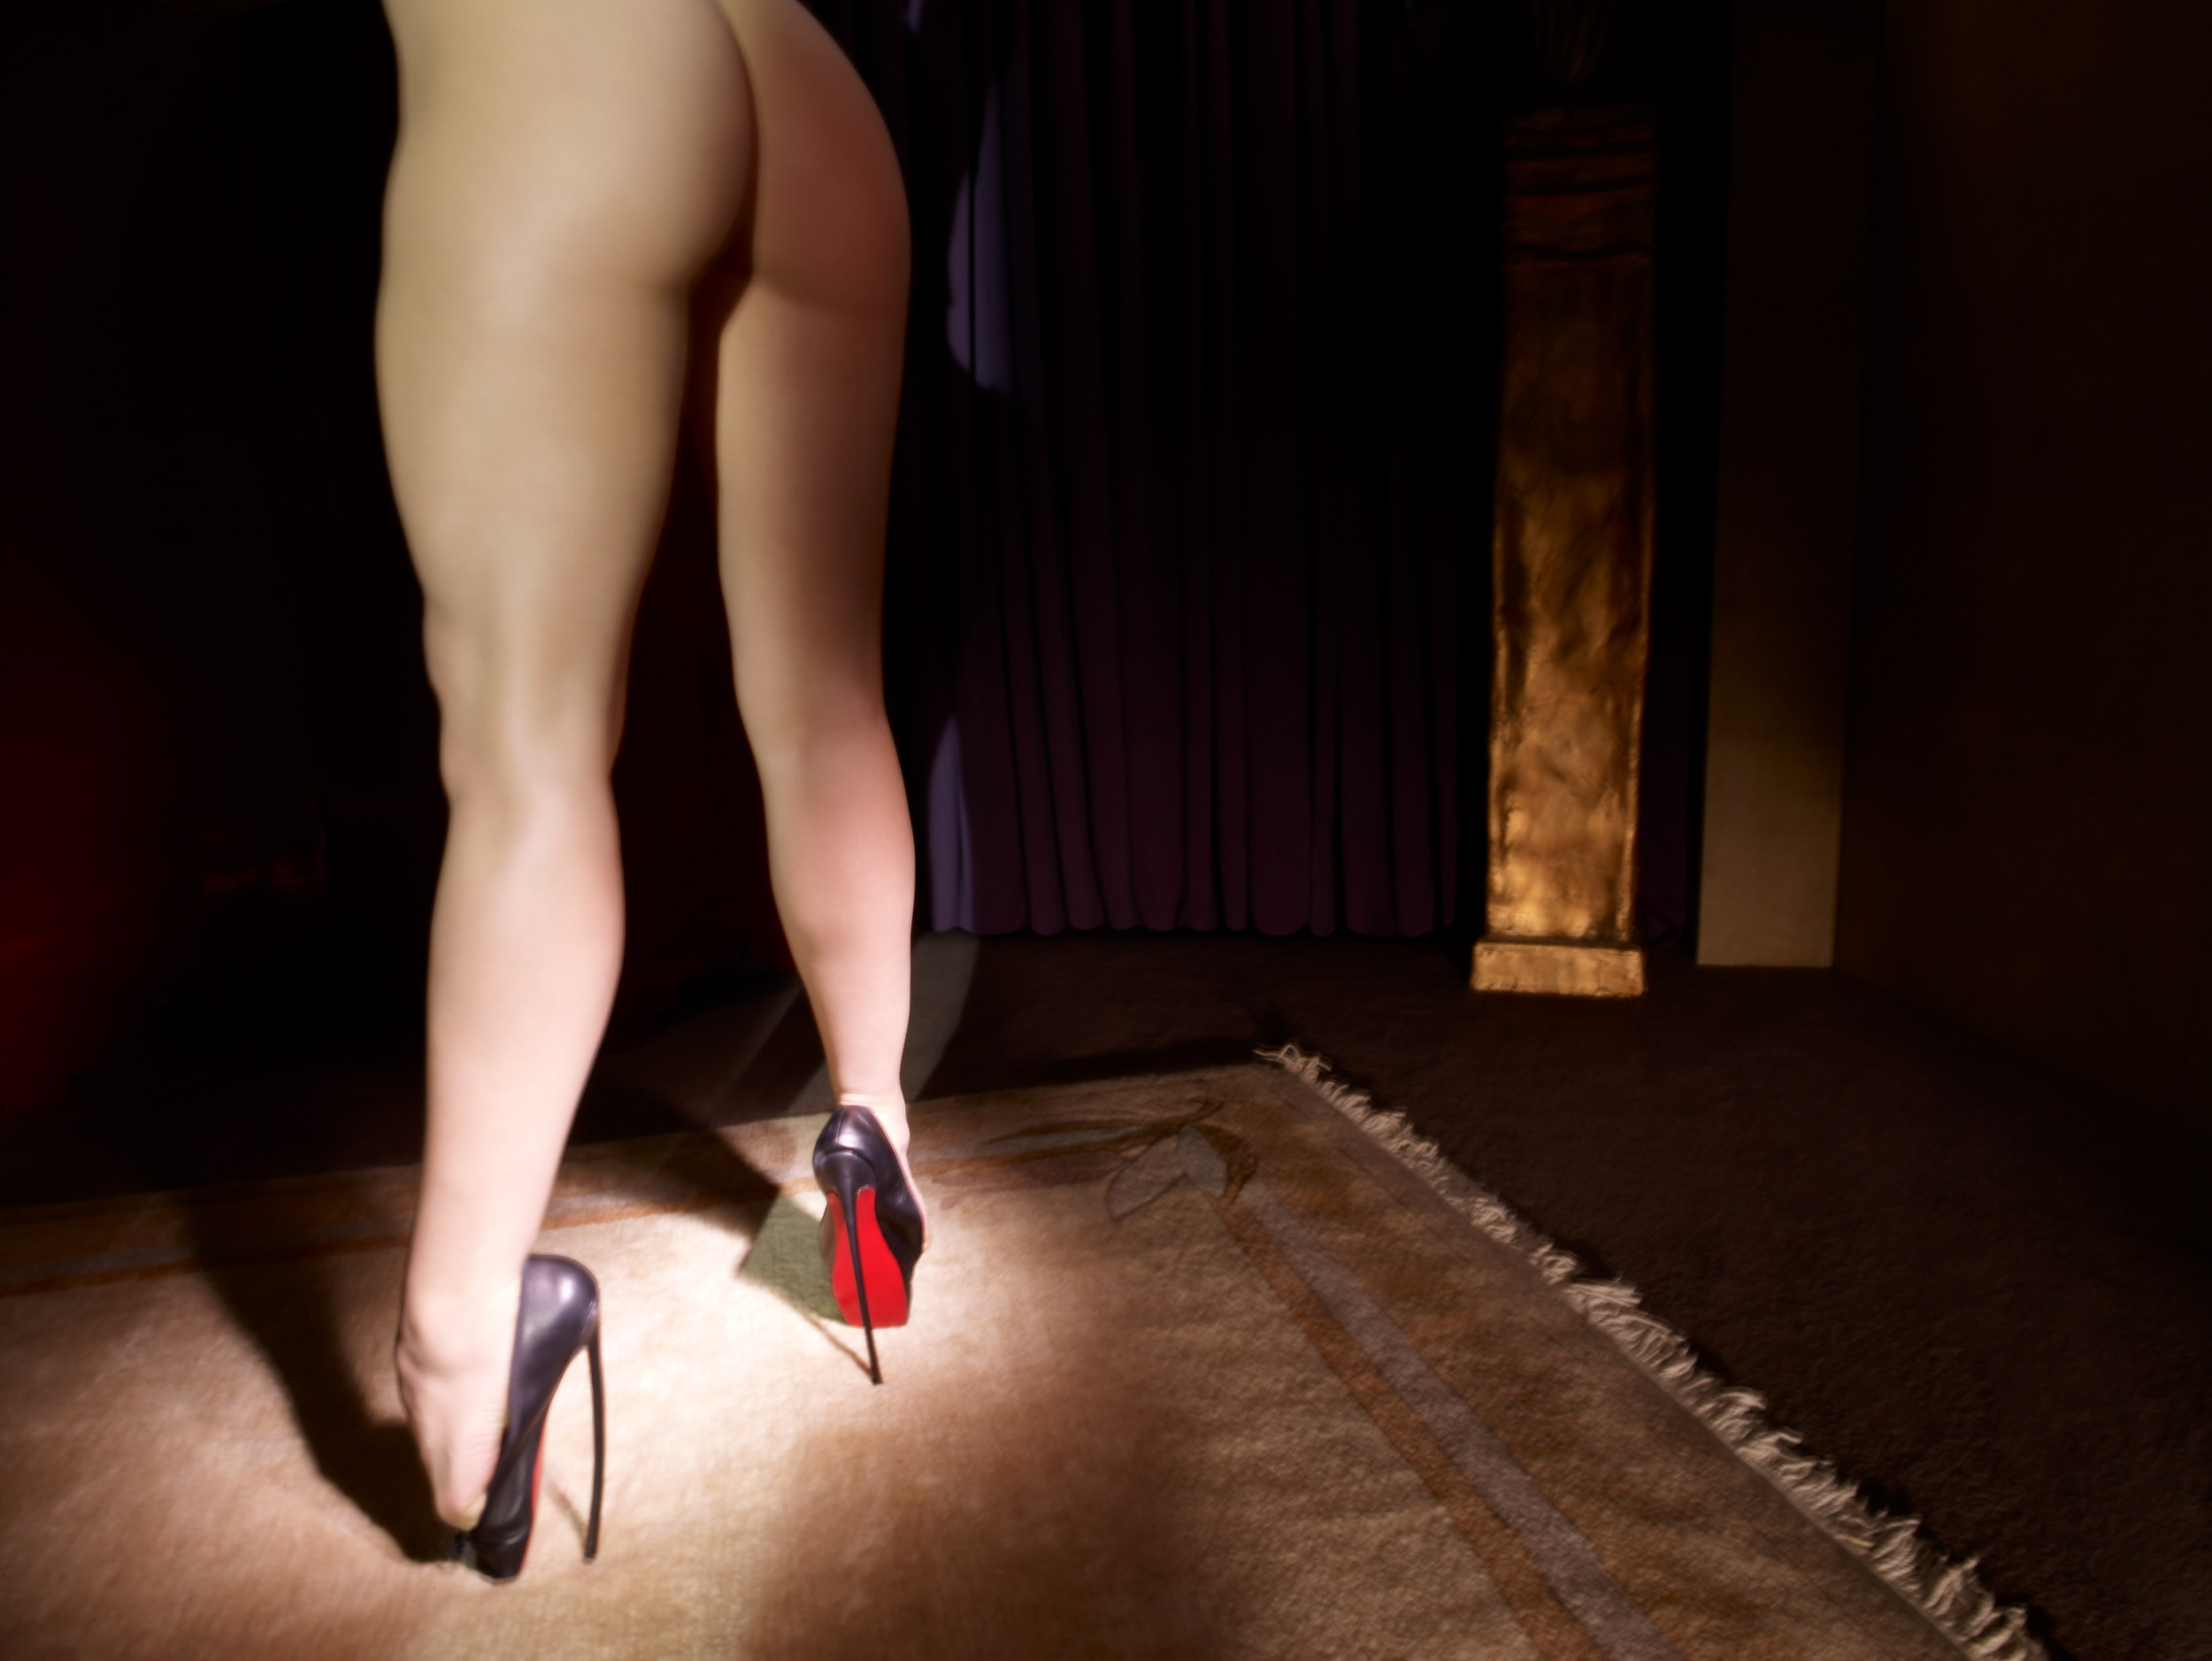 The titillating Louboutin and David Lynch collaboration that brought us to our knees